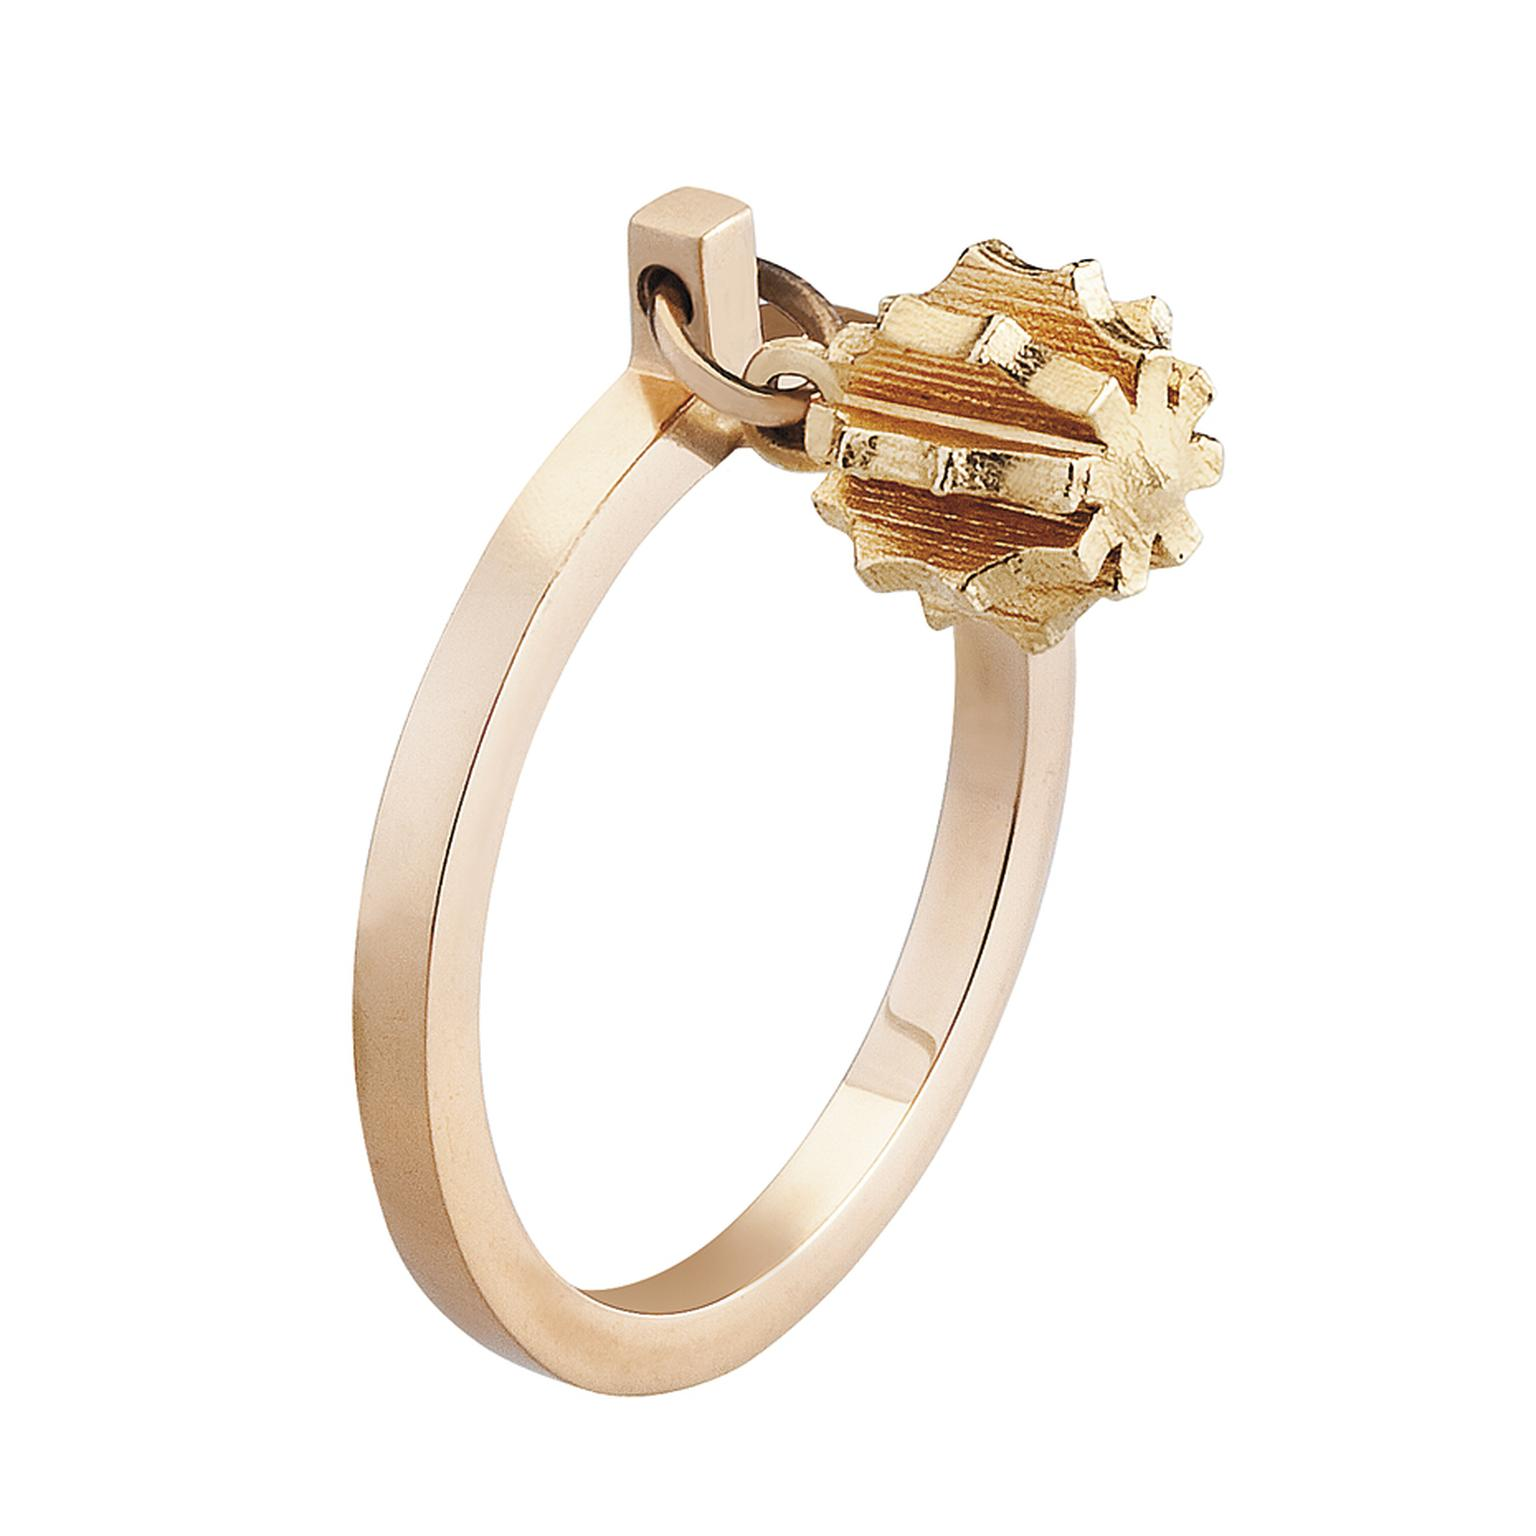 Mimata Revolving Star yellow gold ring.